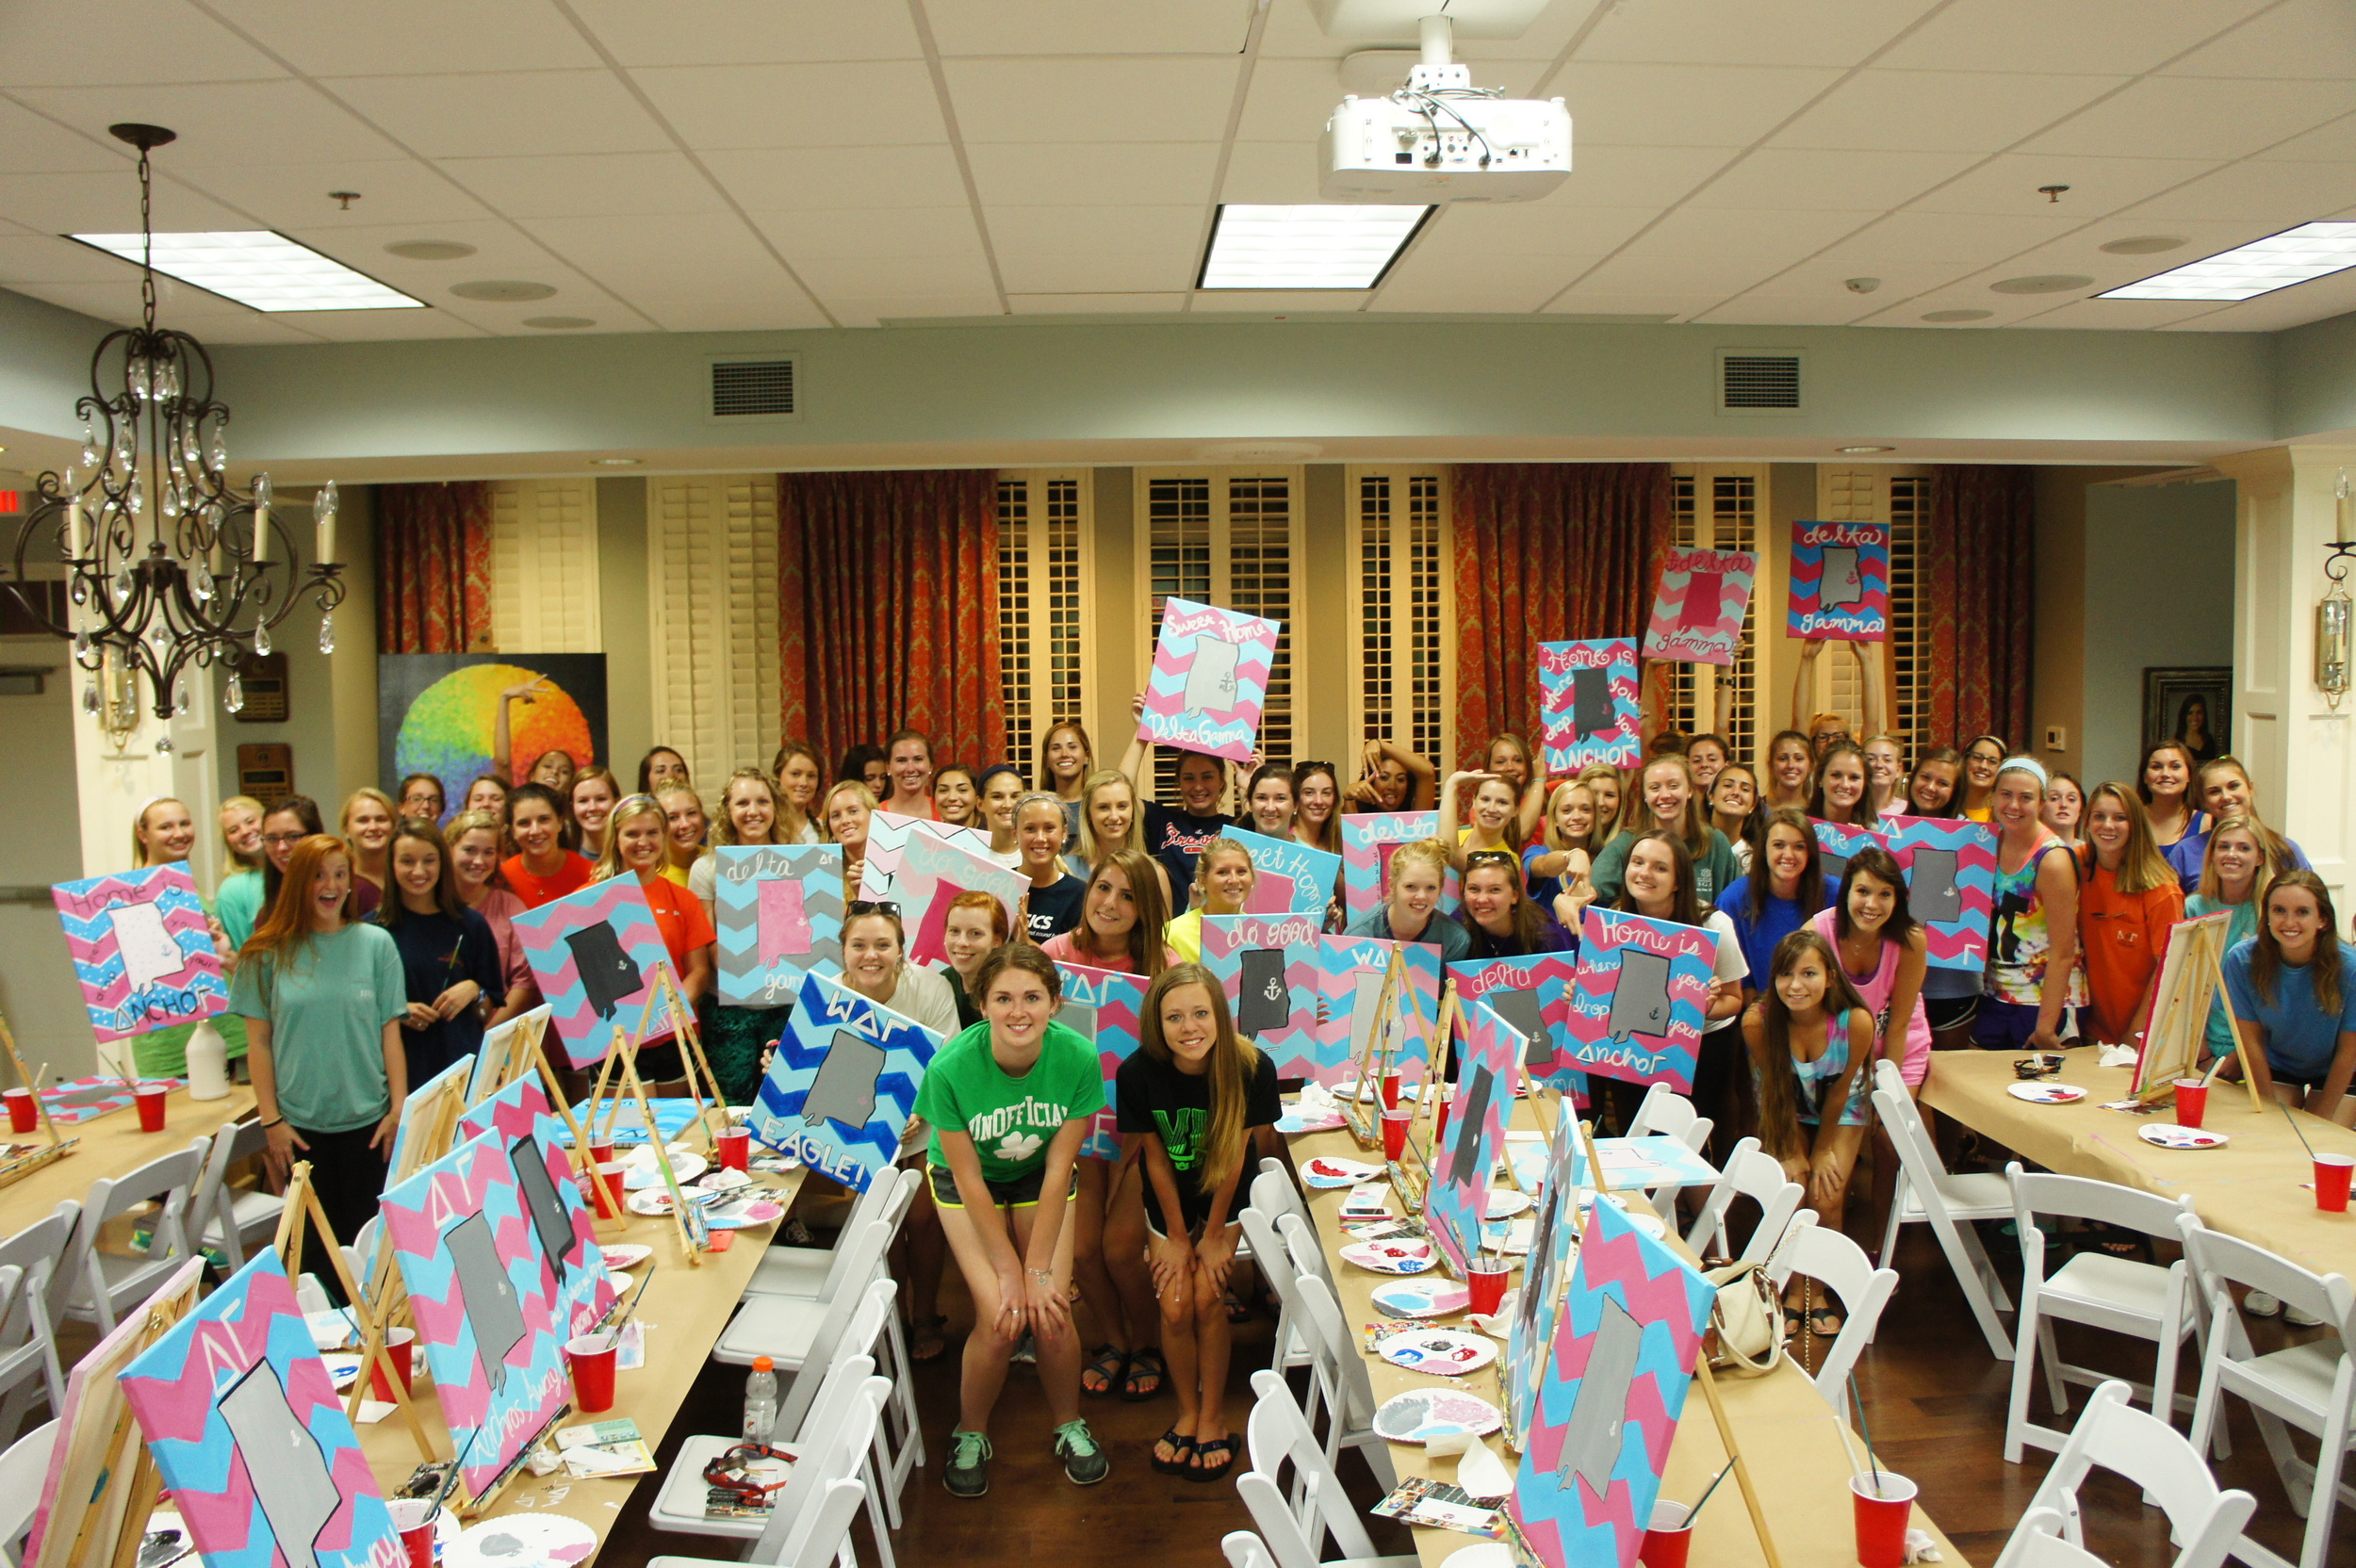 Painting class picture Delta Gamma New Members 2014